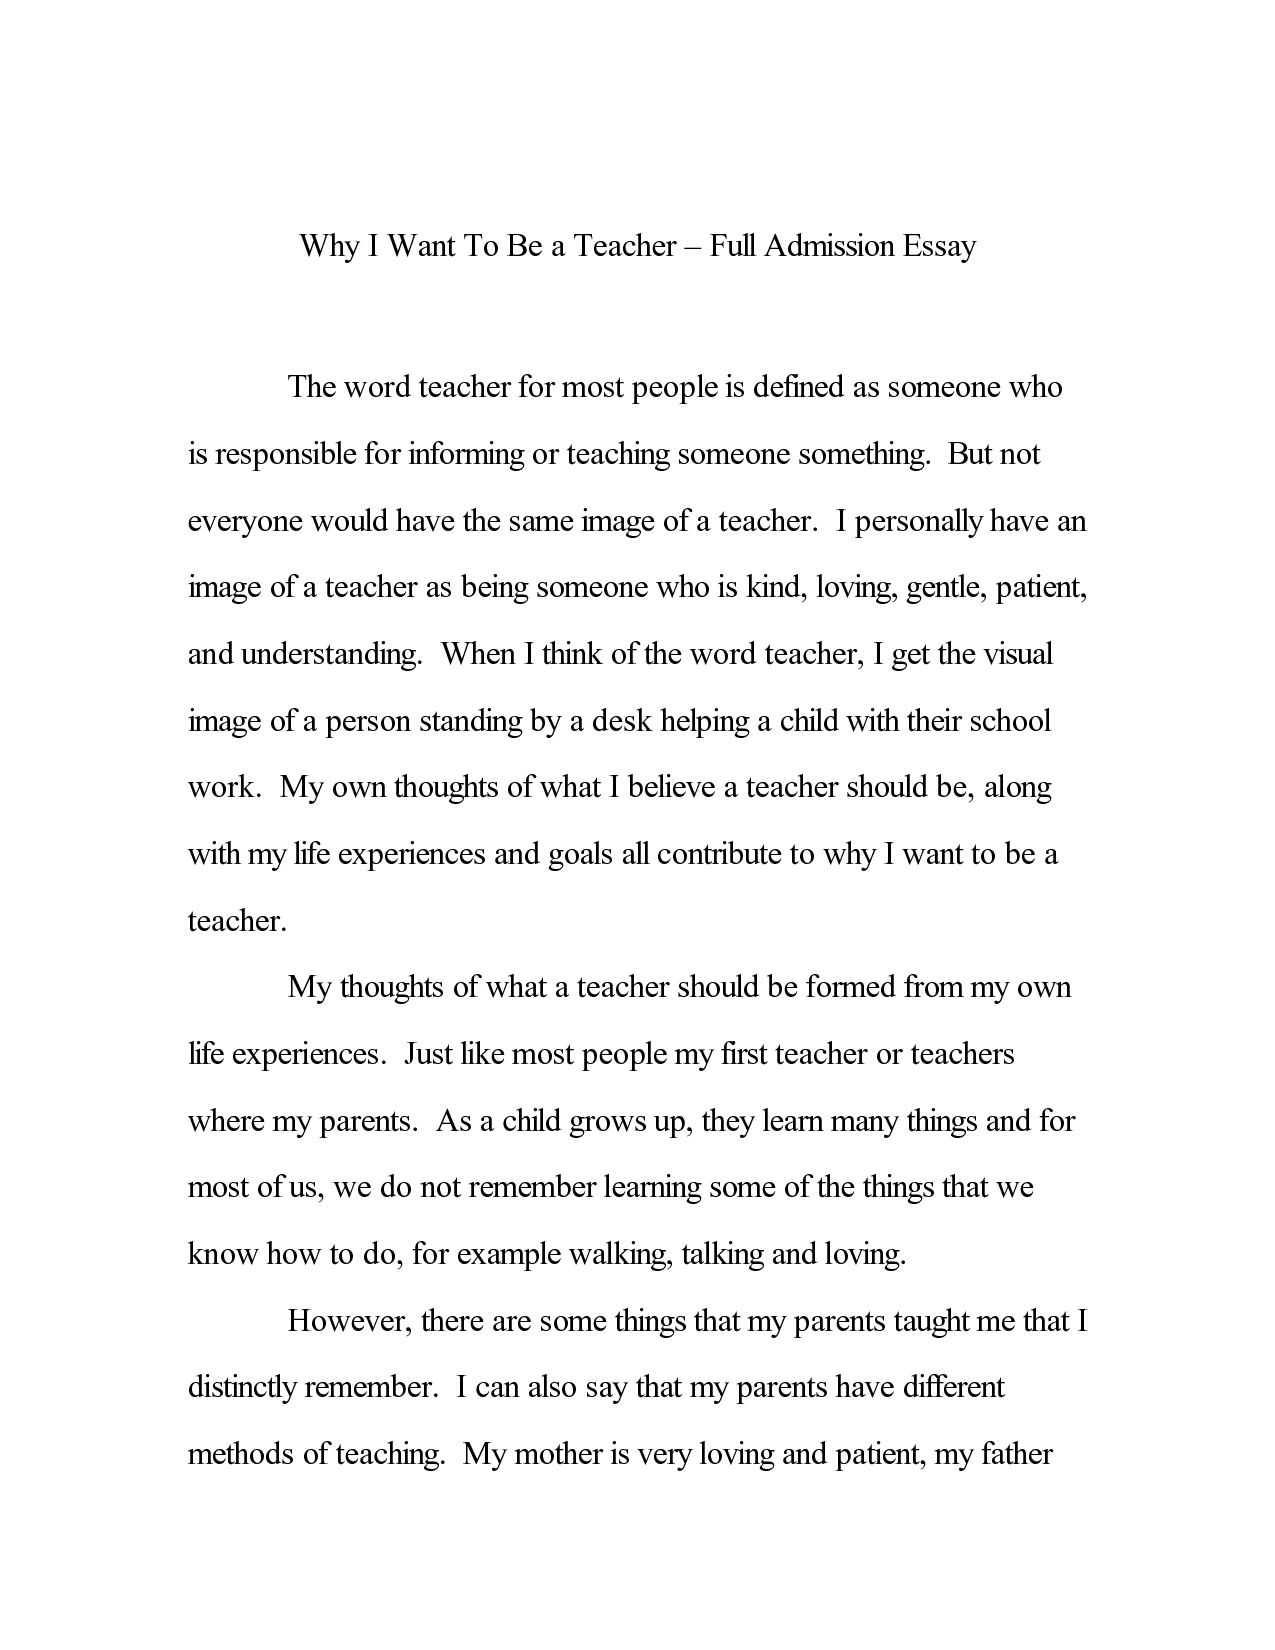 A House On Fire Essay For Class 5